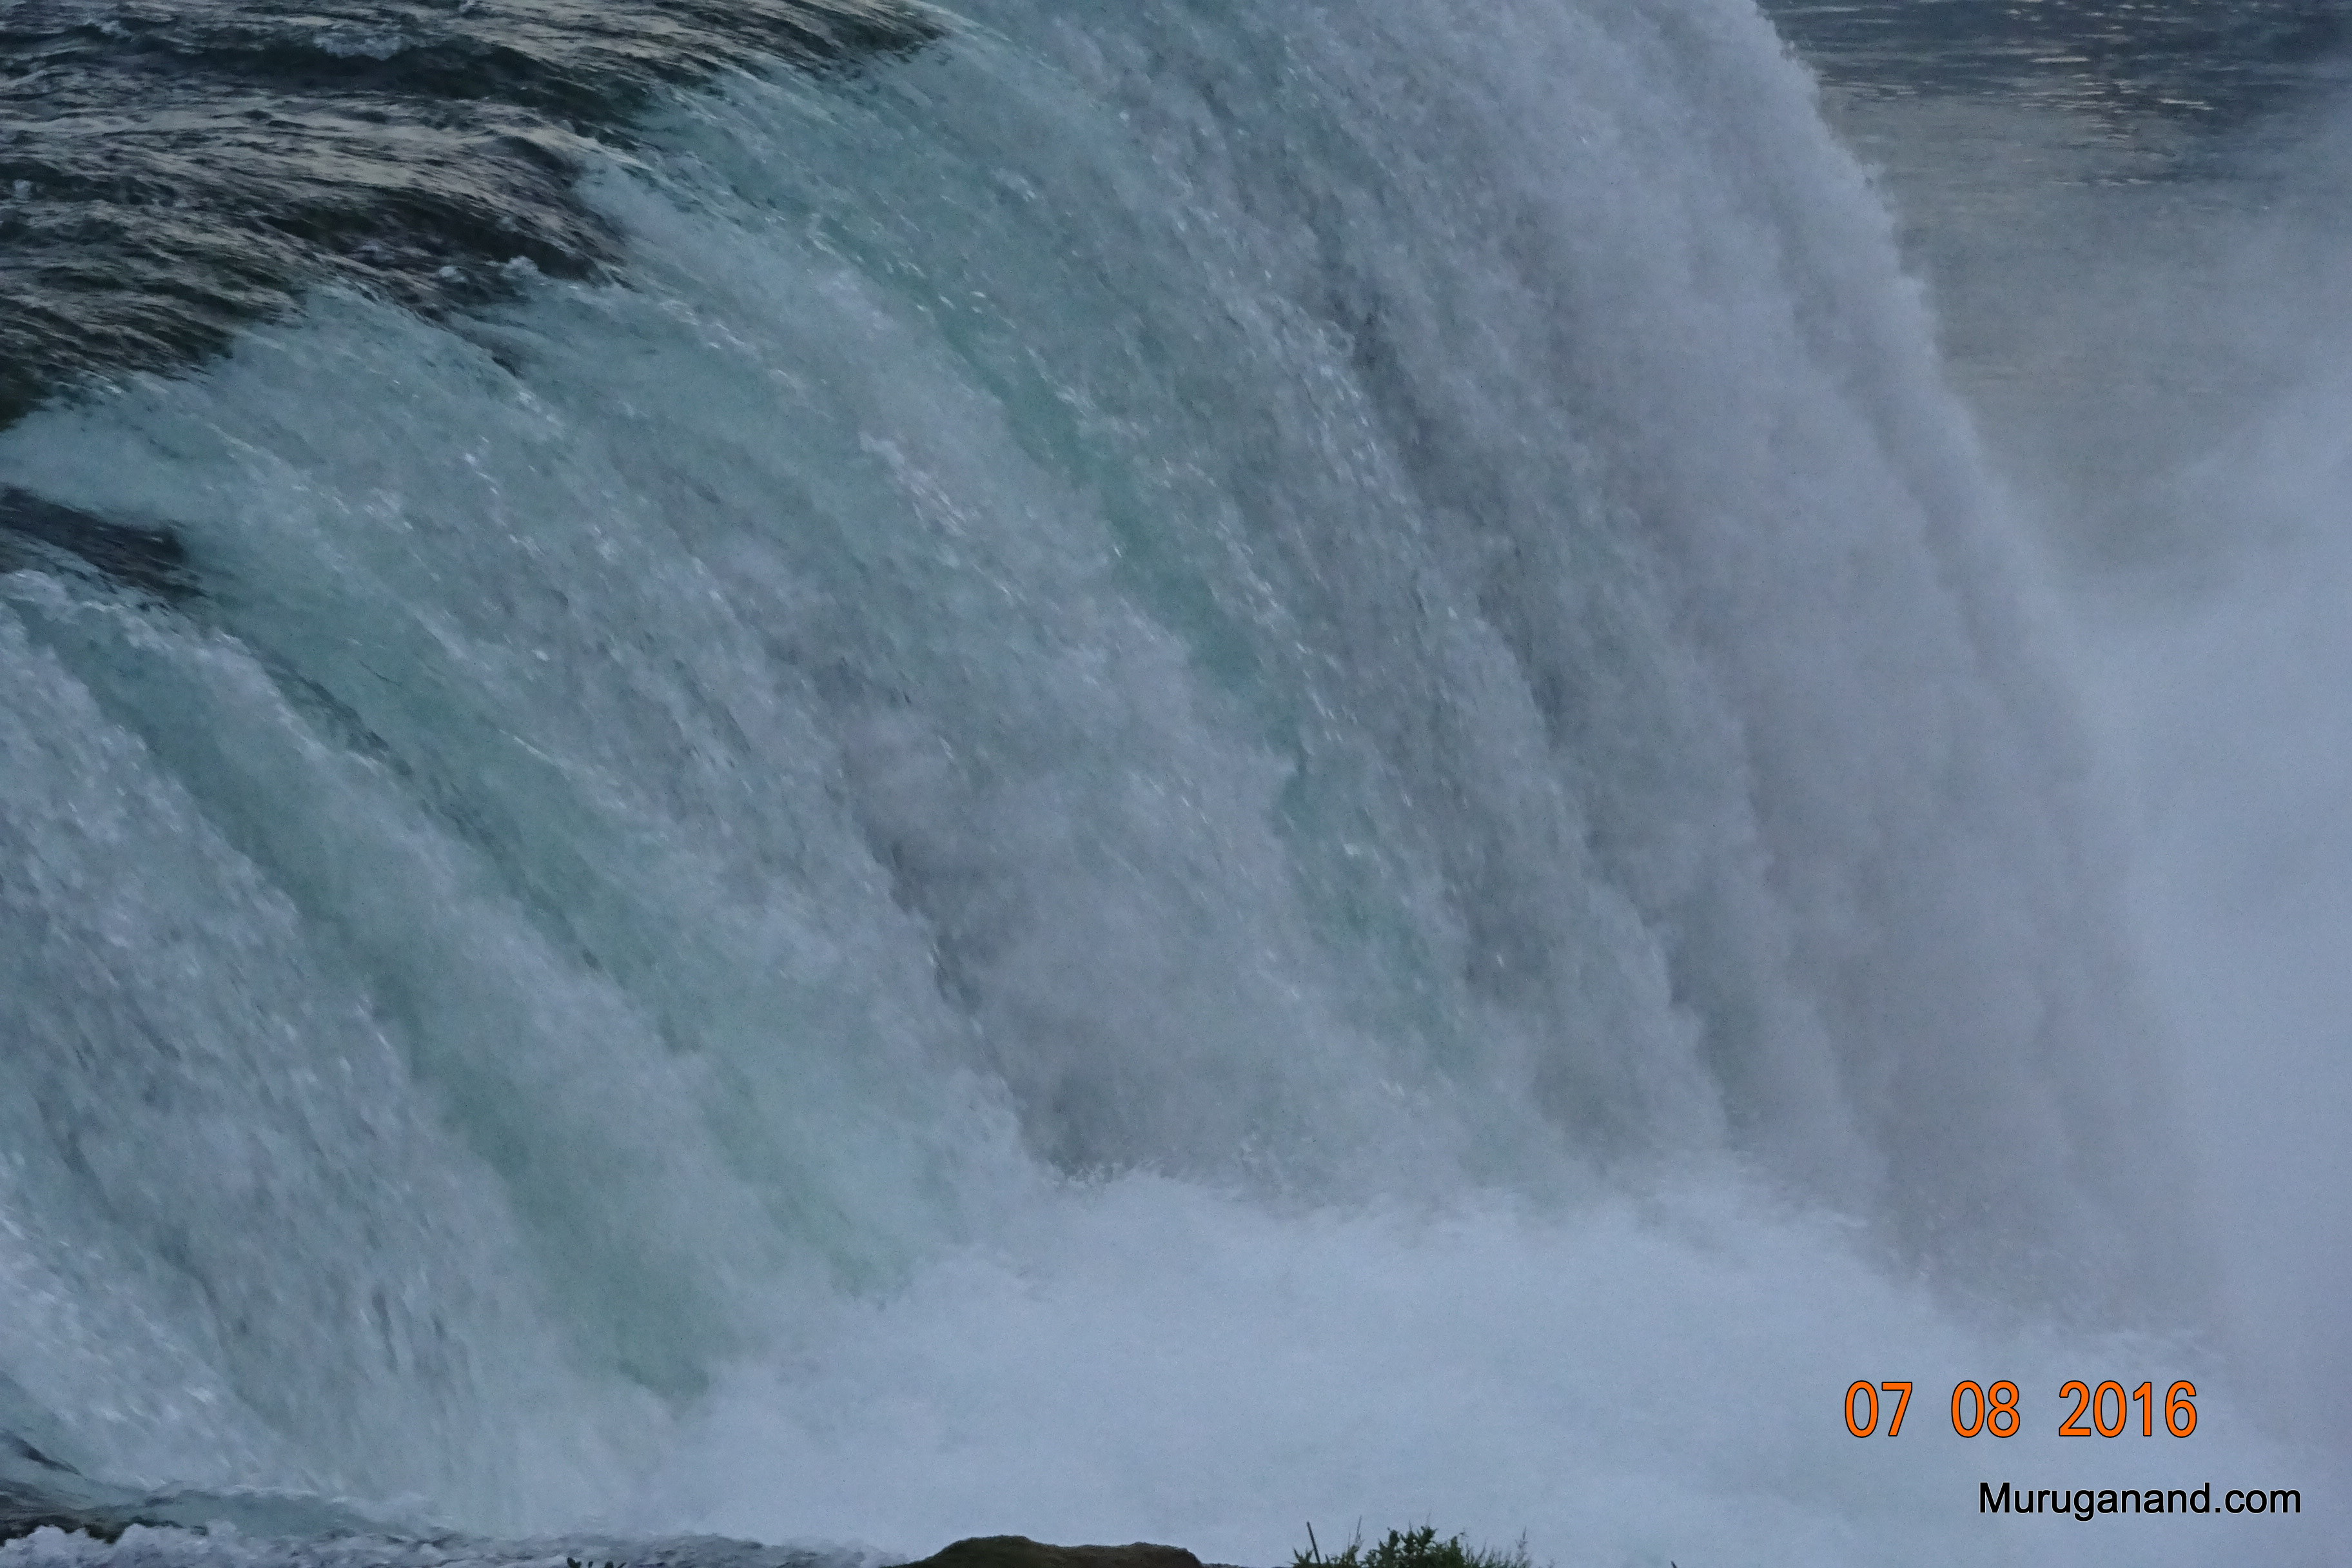 Niagara Falls fall to a height of 170 ft; water is also 170 ft deep down below.